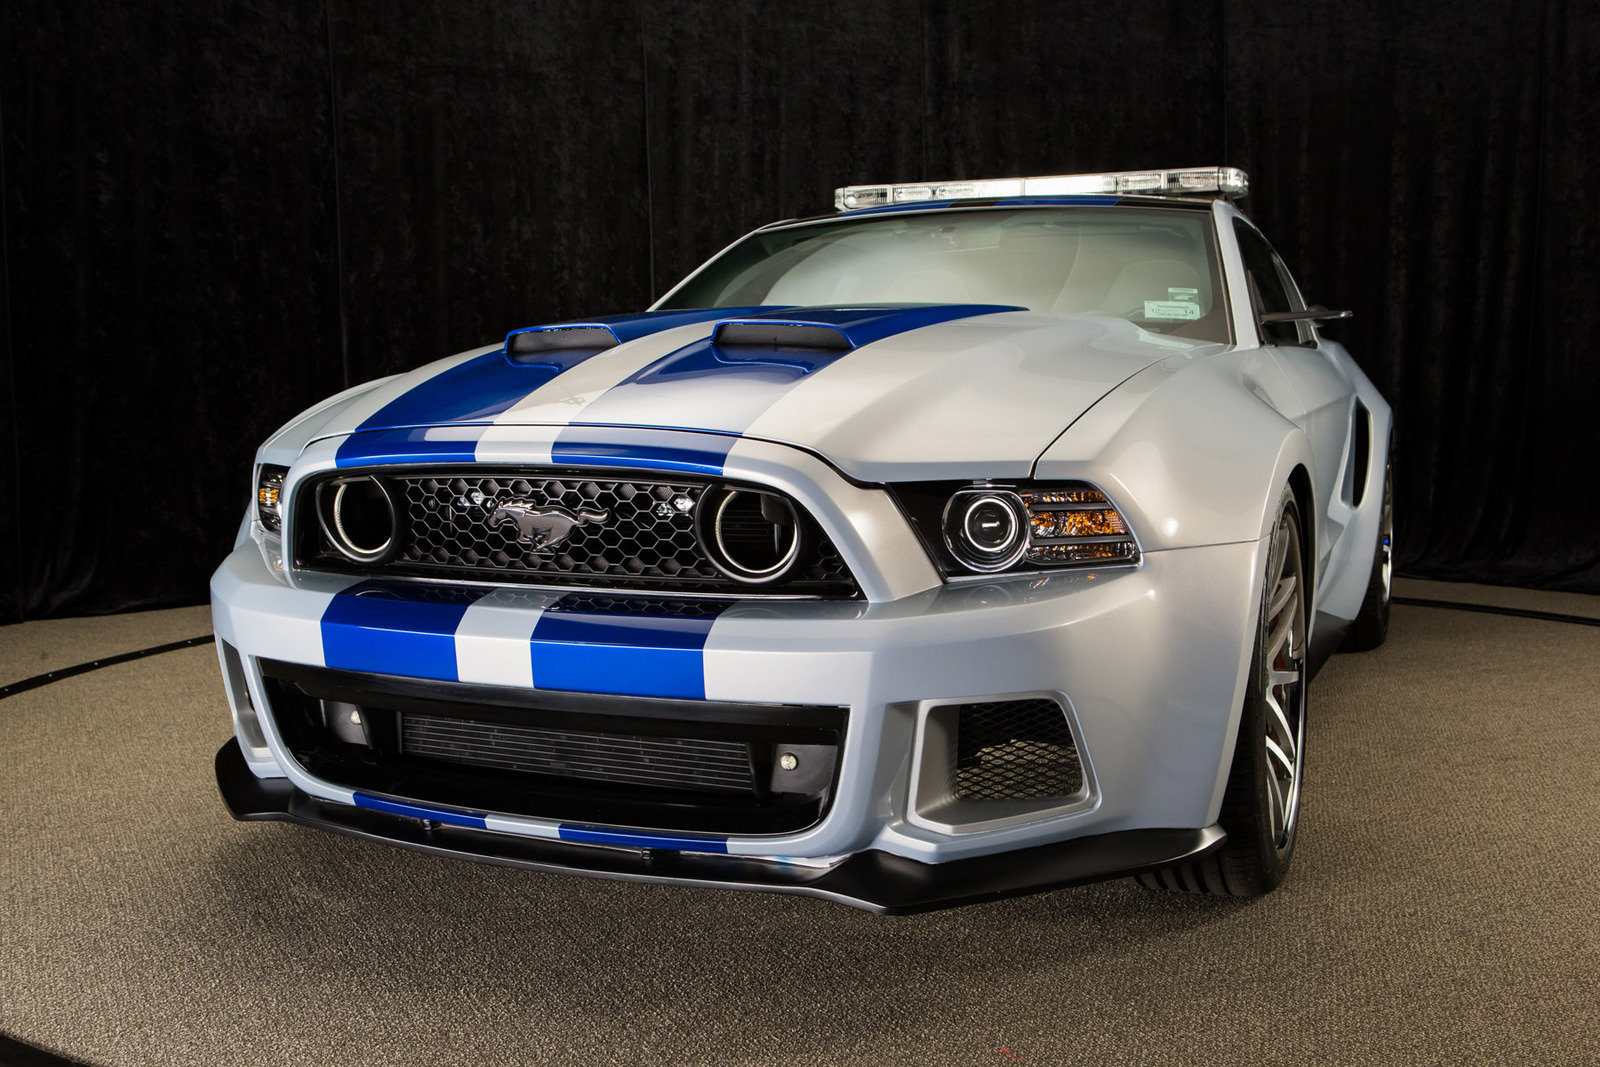 2013 Ford Mustang Shelby Gt500 Need For Speed Edition Top Speed